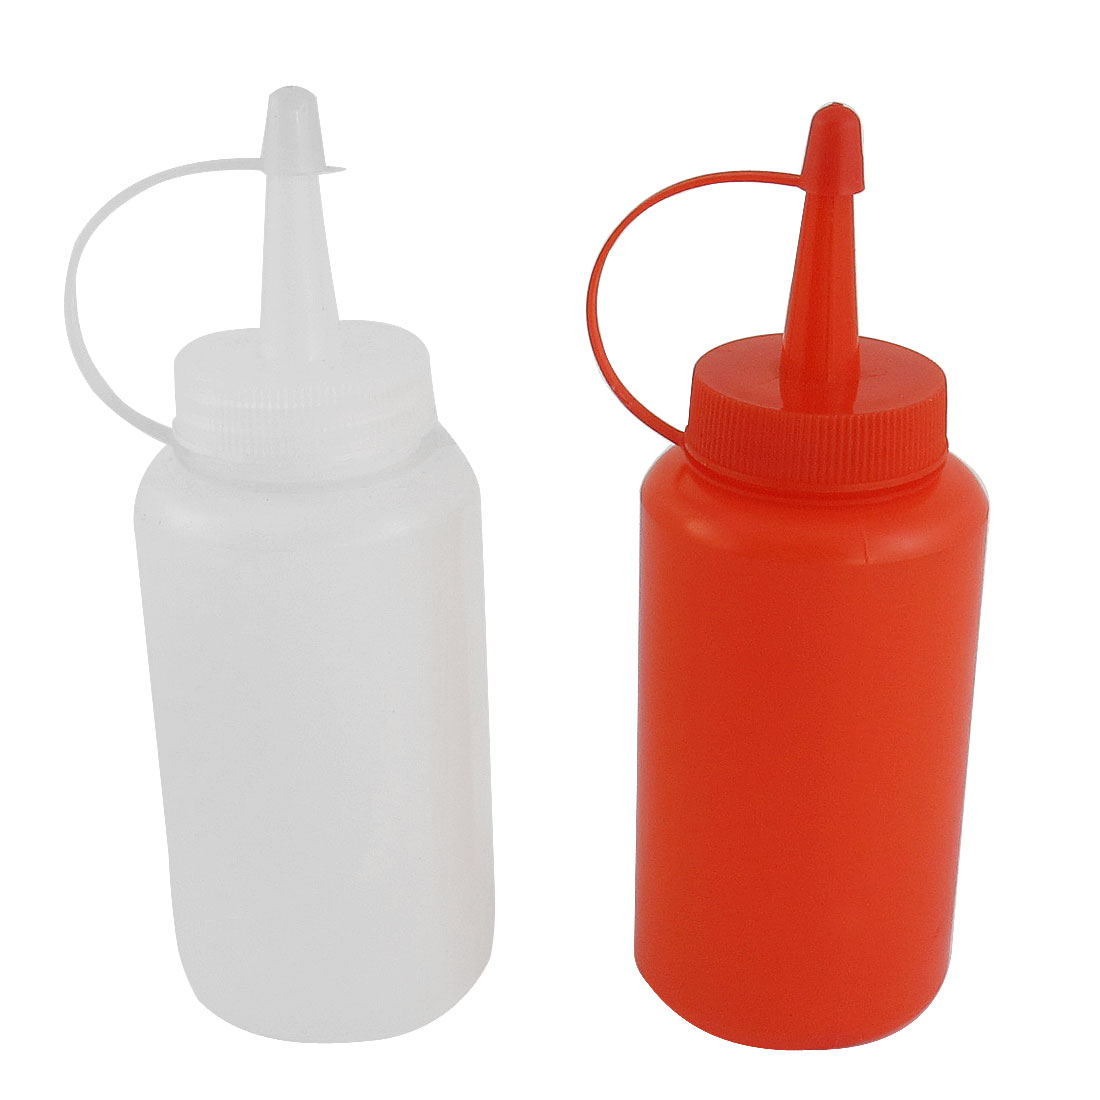 2 Pcs Red White Plastic Squeeze Sauce Salad Ketchup Oil Jam Capped Empty Bottle Dispenser Storage Container 170ml